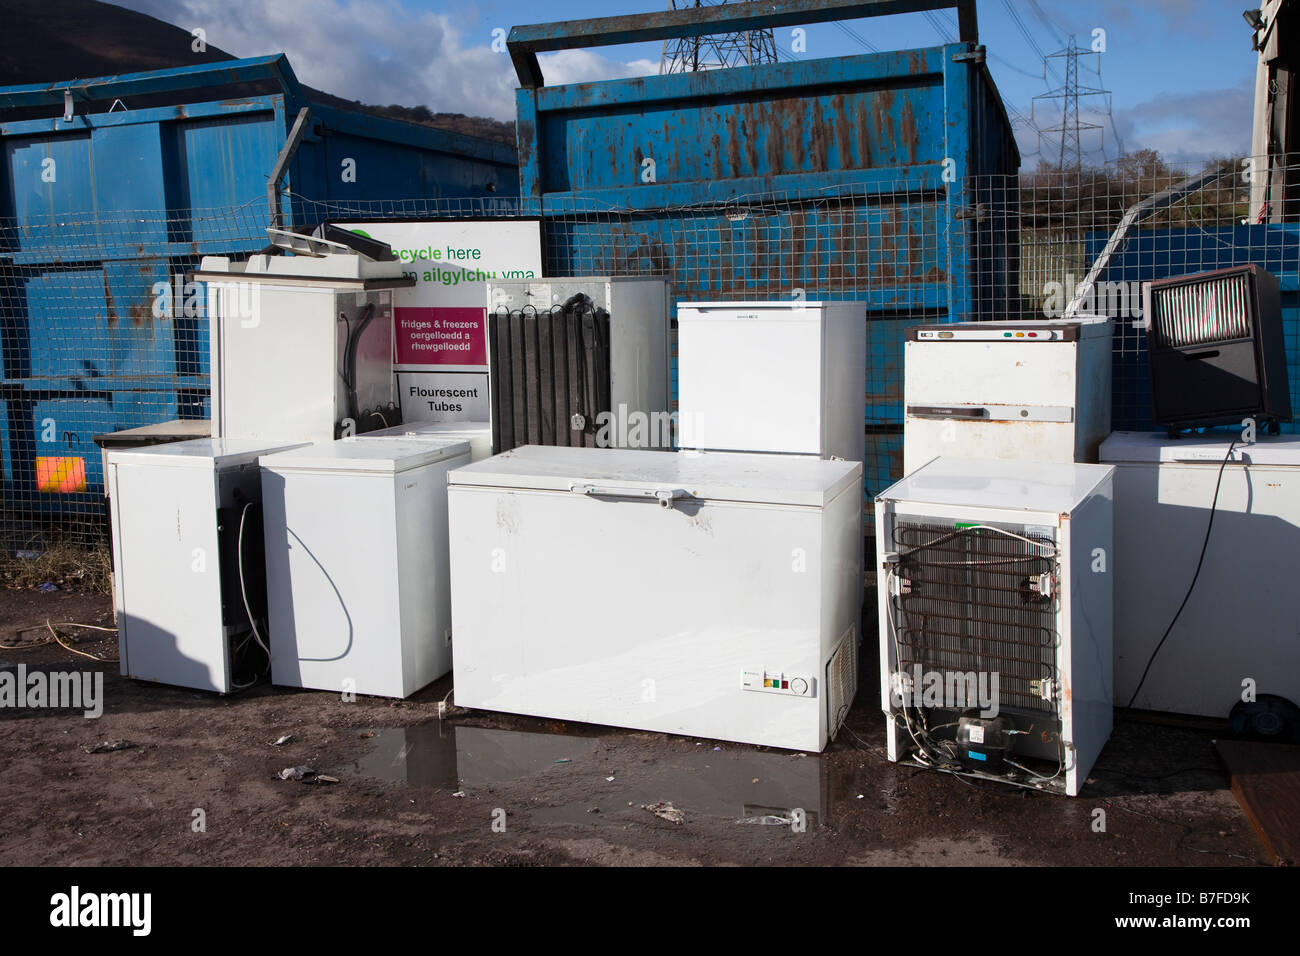 Disposal of electrical white goods at recycling depot Wales UK - Stock Image